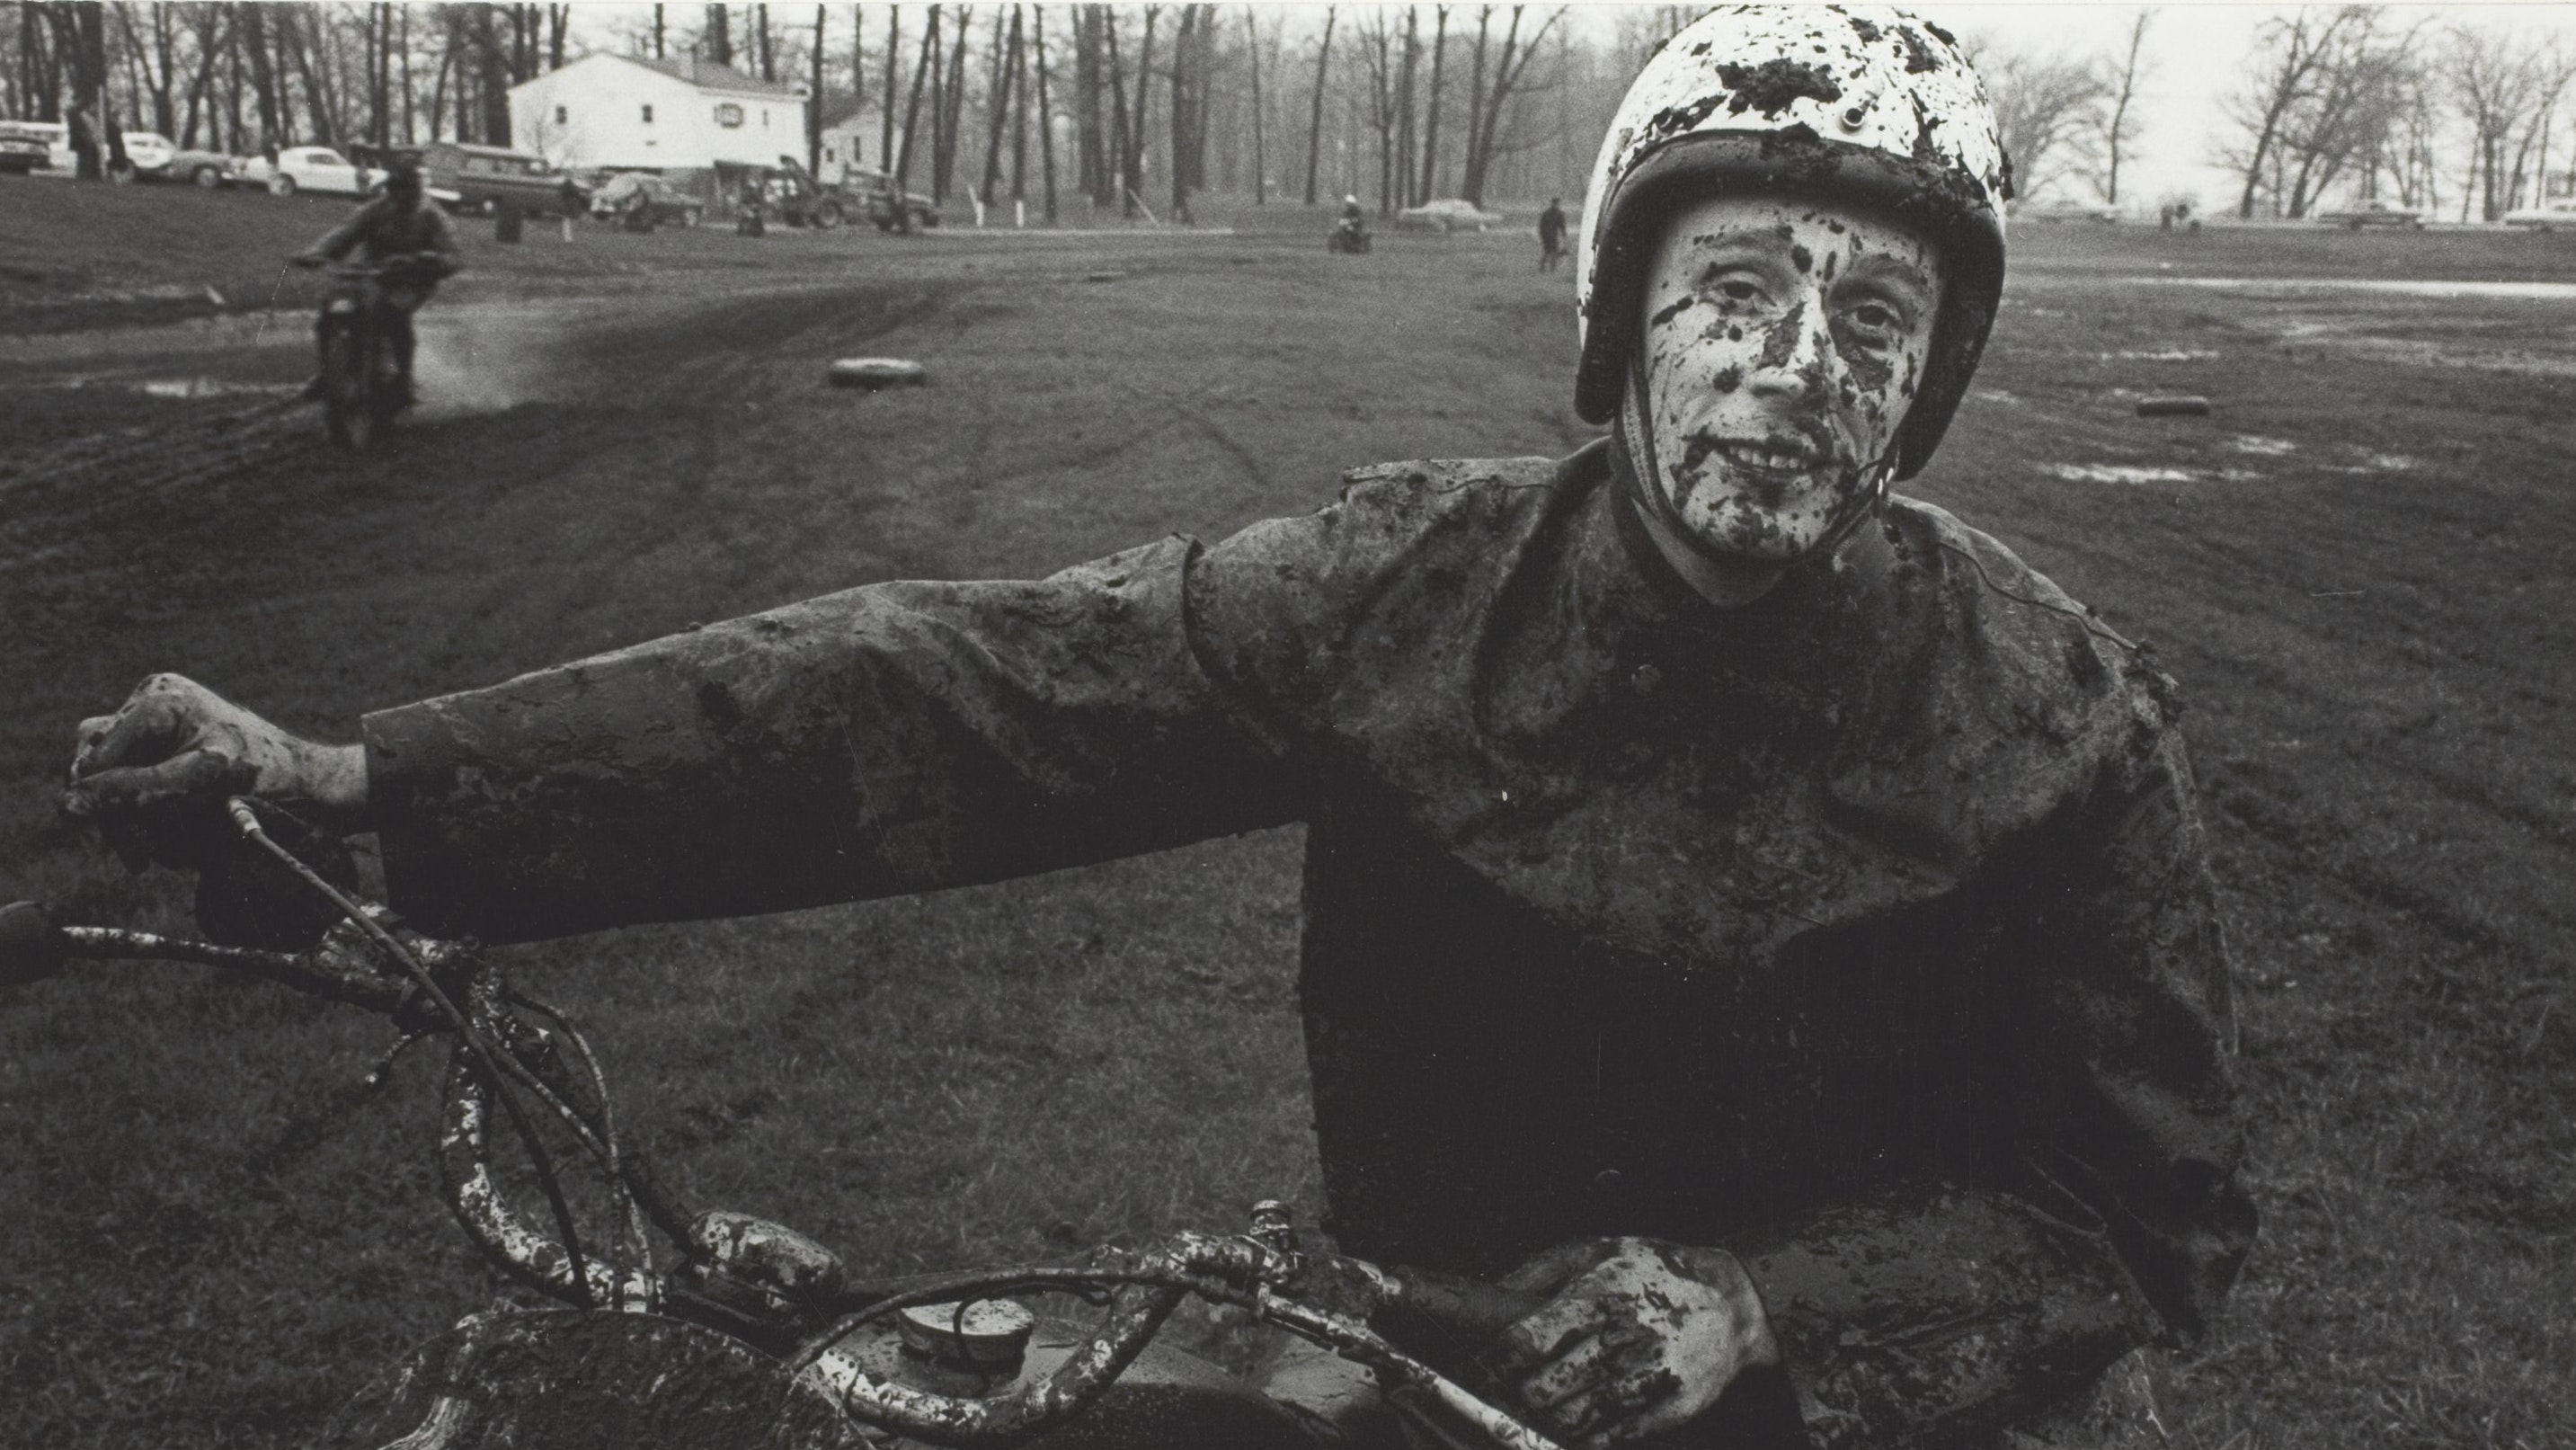 A photo of a man on a motorcycle with his face, hands, and clothes spattered with mud.